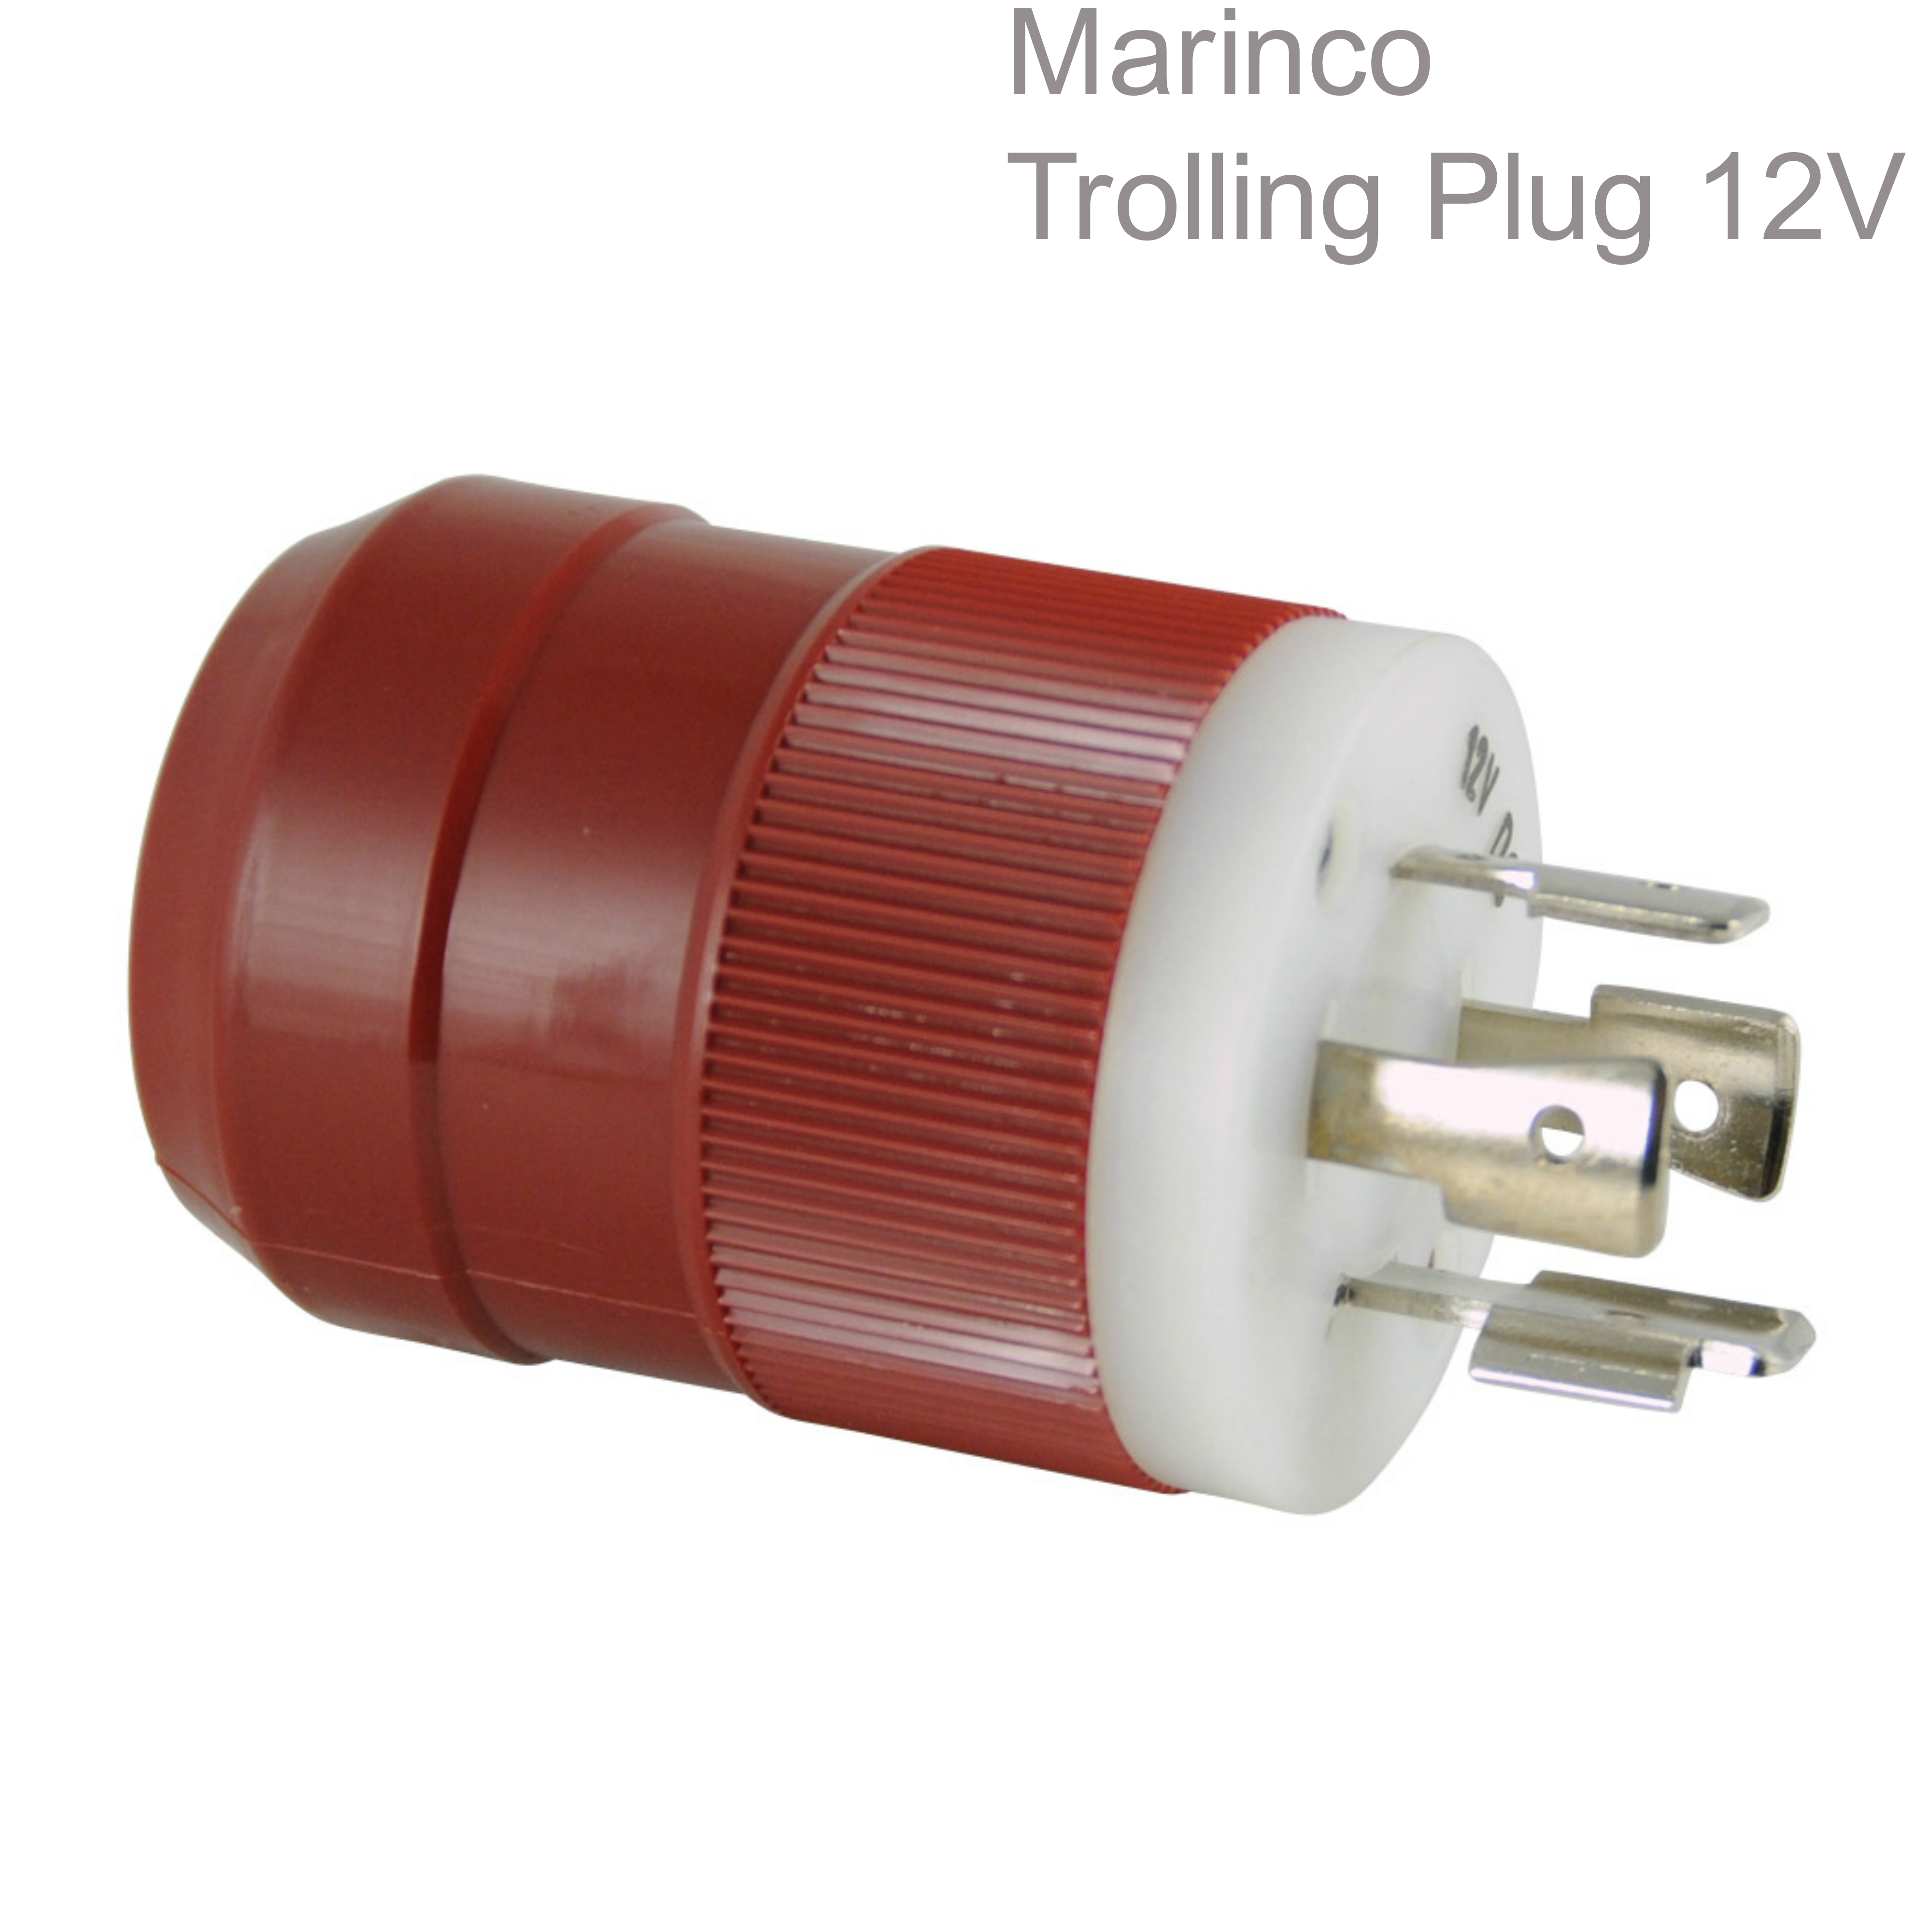 Marinco Trolling Plug 12V|4-Wire System|Allow 2 Batteries|Simultaneous|In Marine